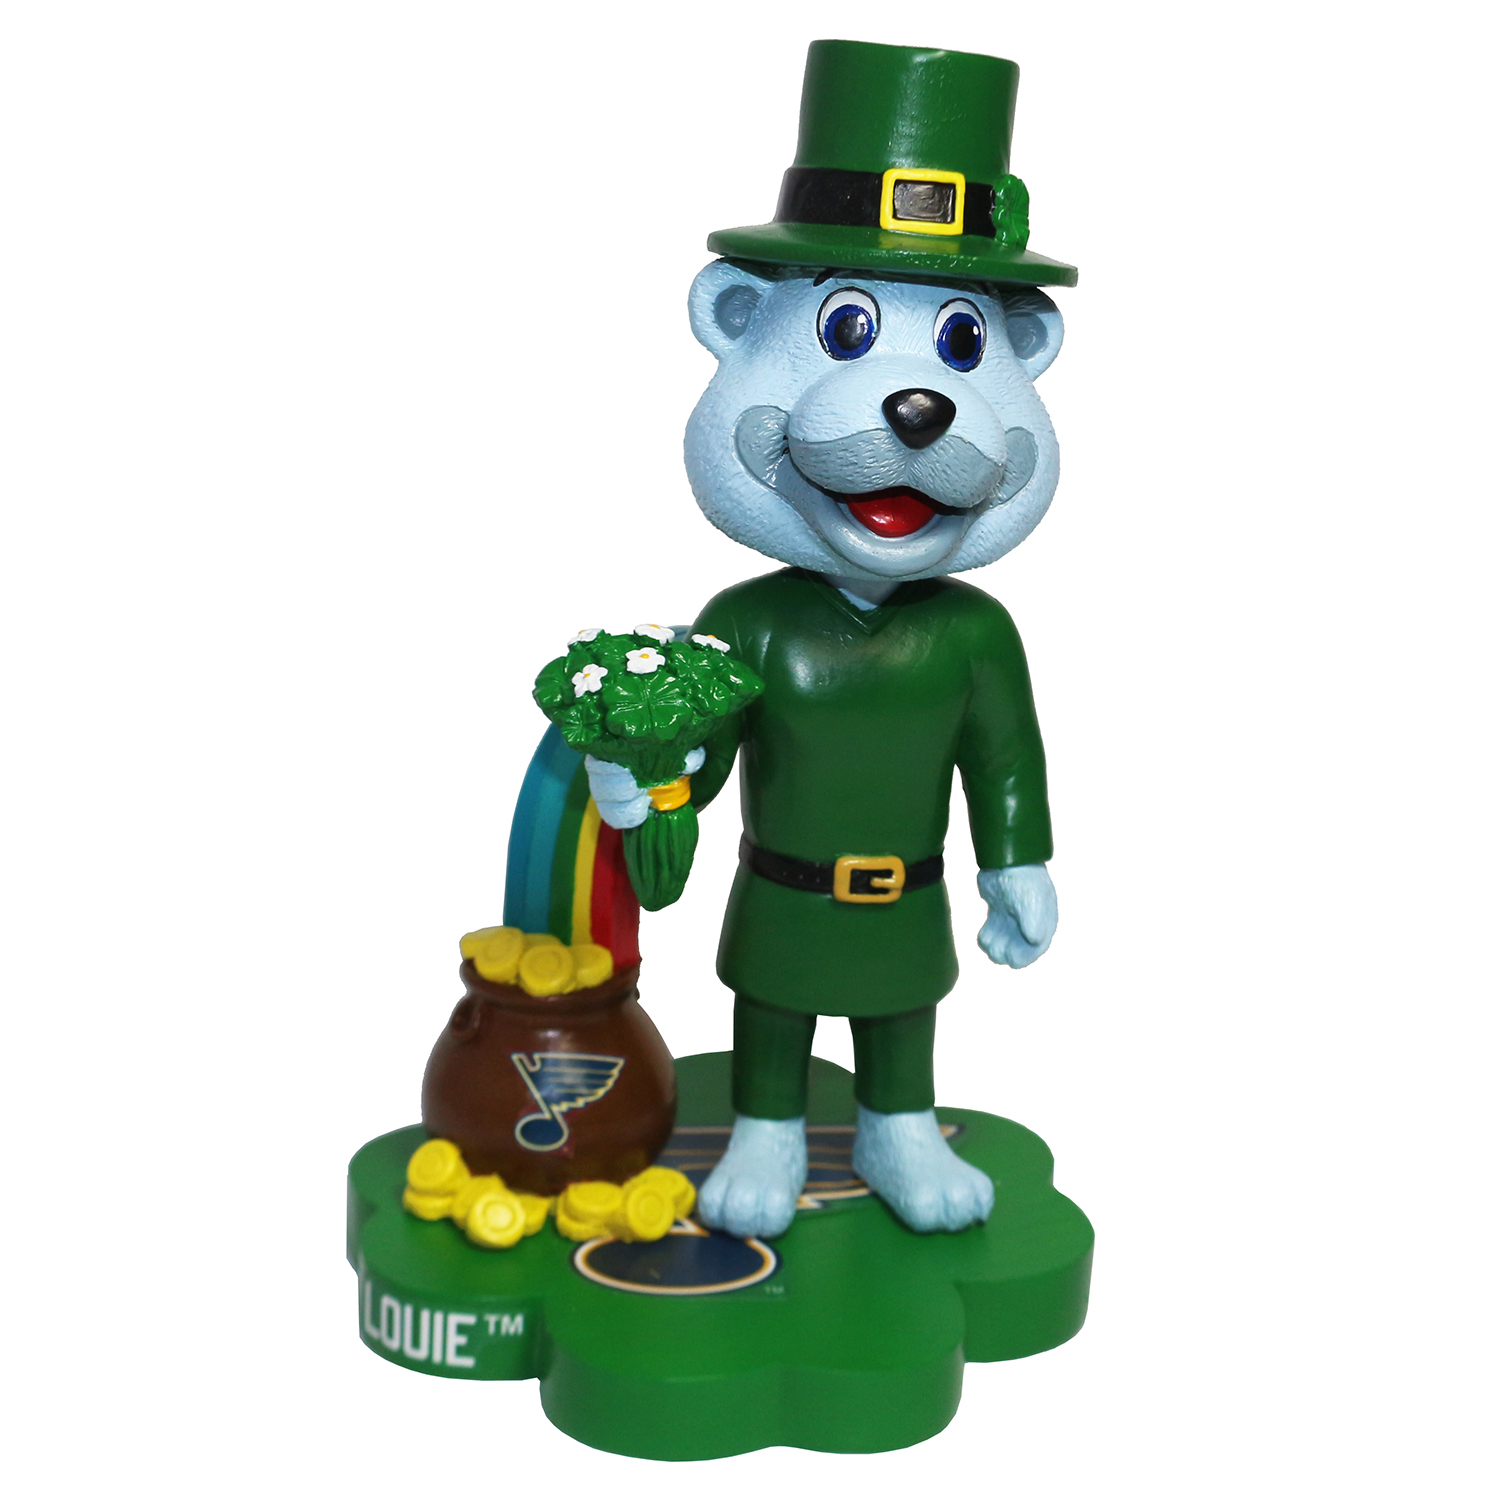 St. Louis Blues Louie St. Patrick's Day Mascot Bobblehead